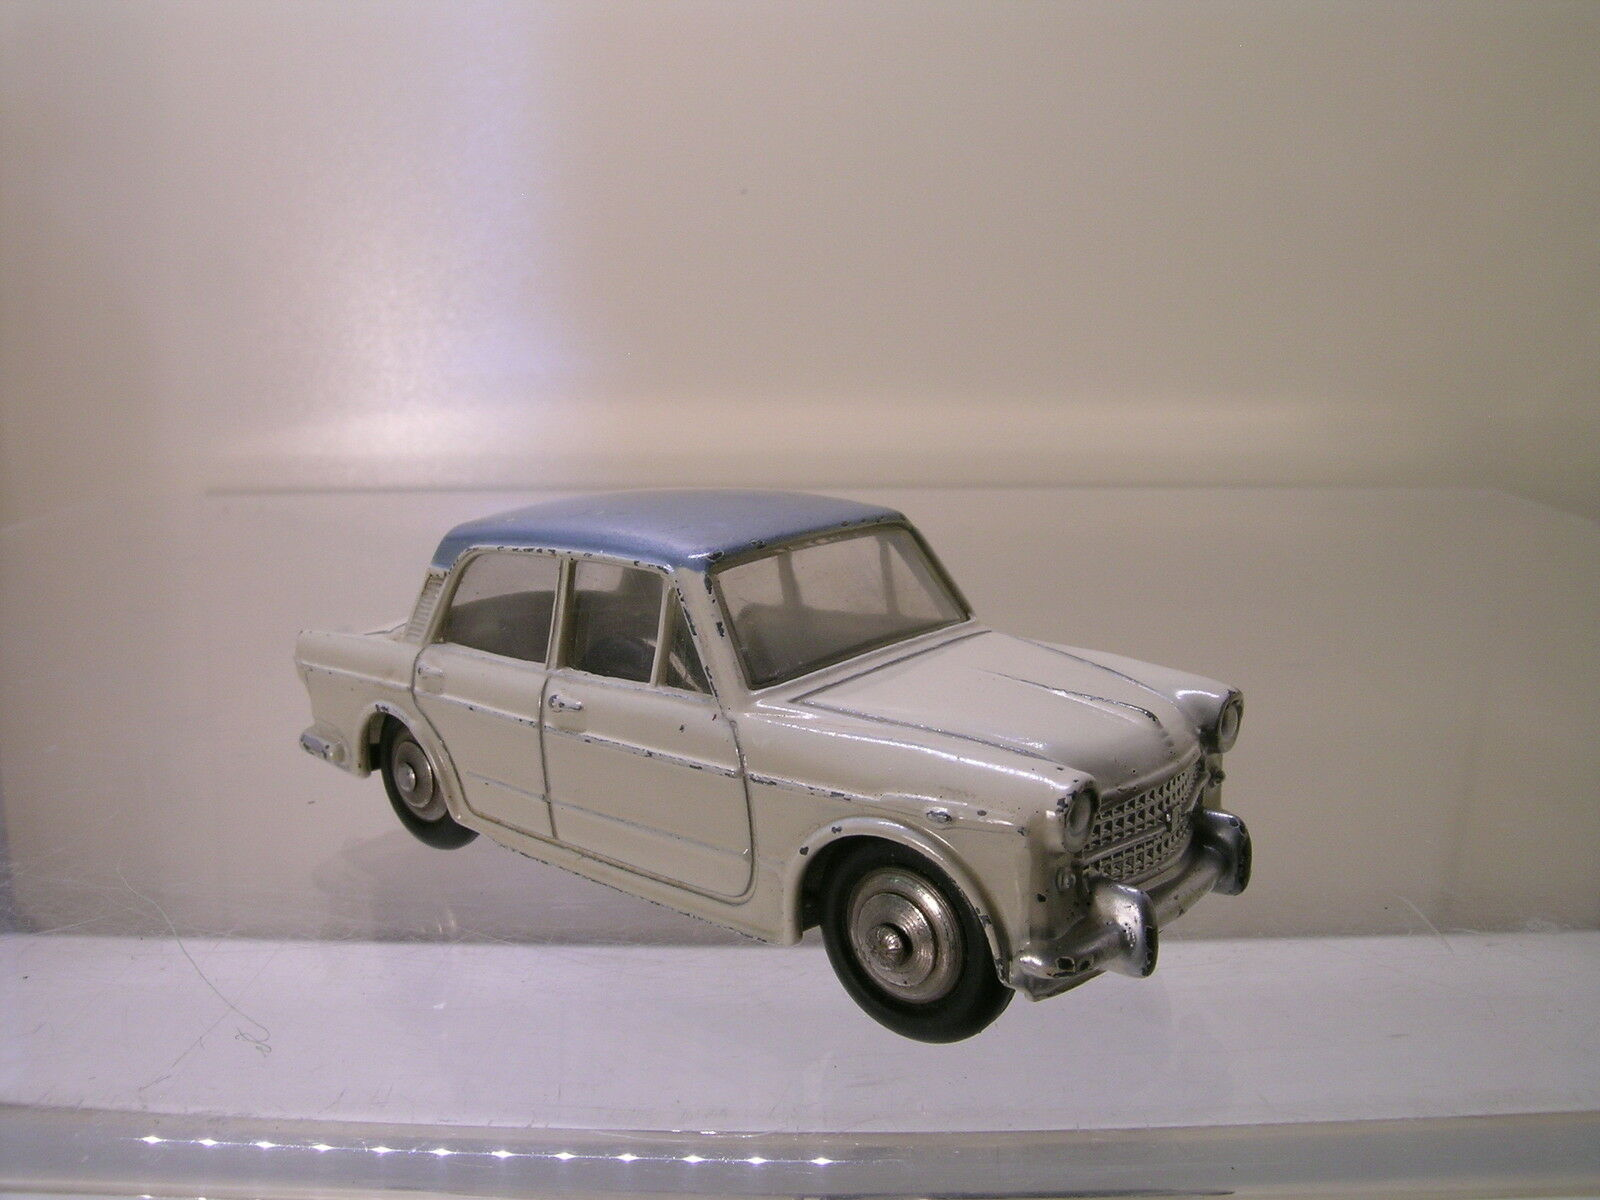 DINKY TOYS F 531 FIAT 1200 GRANDE VUE CREAM BODY-METALLIC azul ROOF 1959 1 43